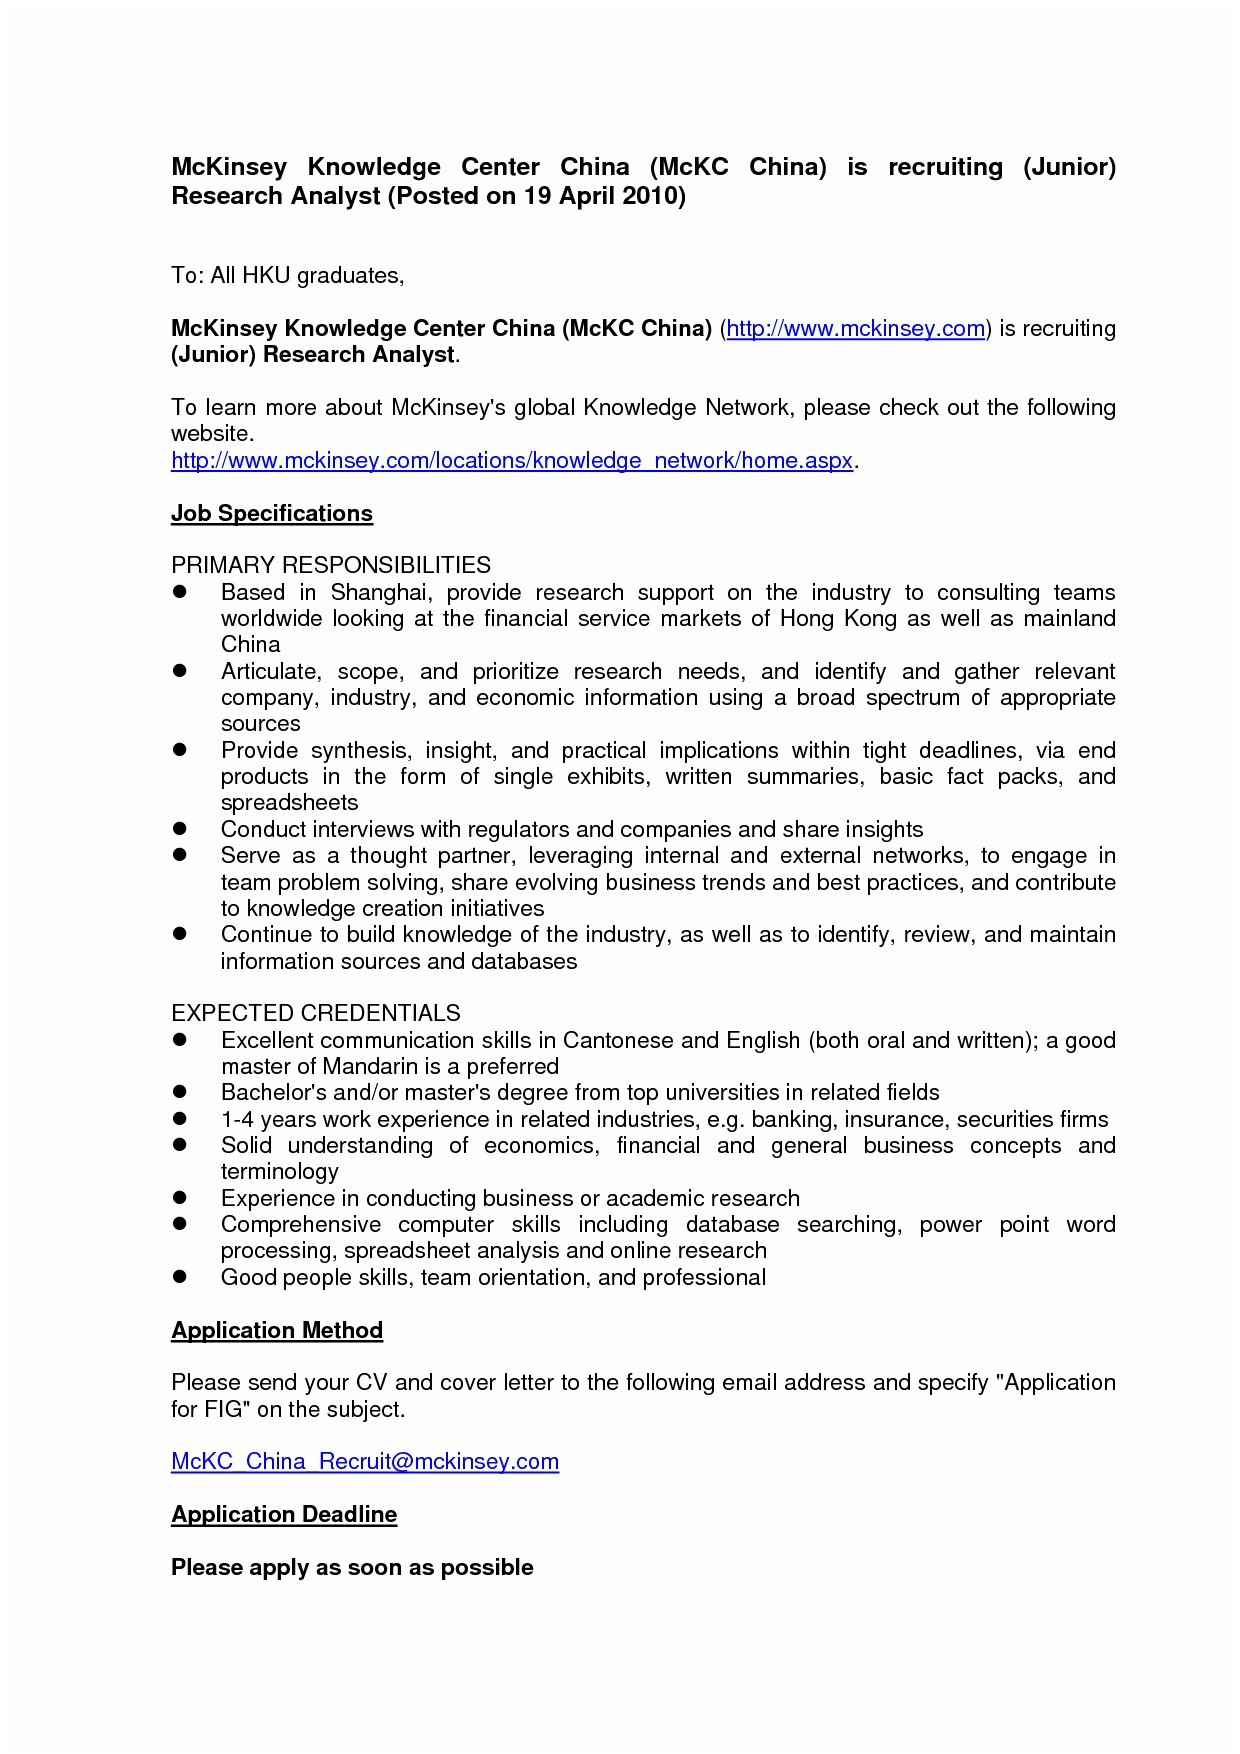 Quick Cover Letter Template - Resume Job Template Bunch Ideas for Internal Job Posting Template